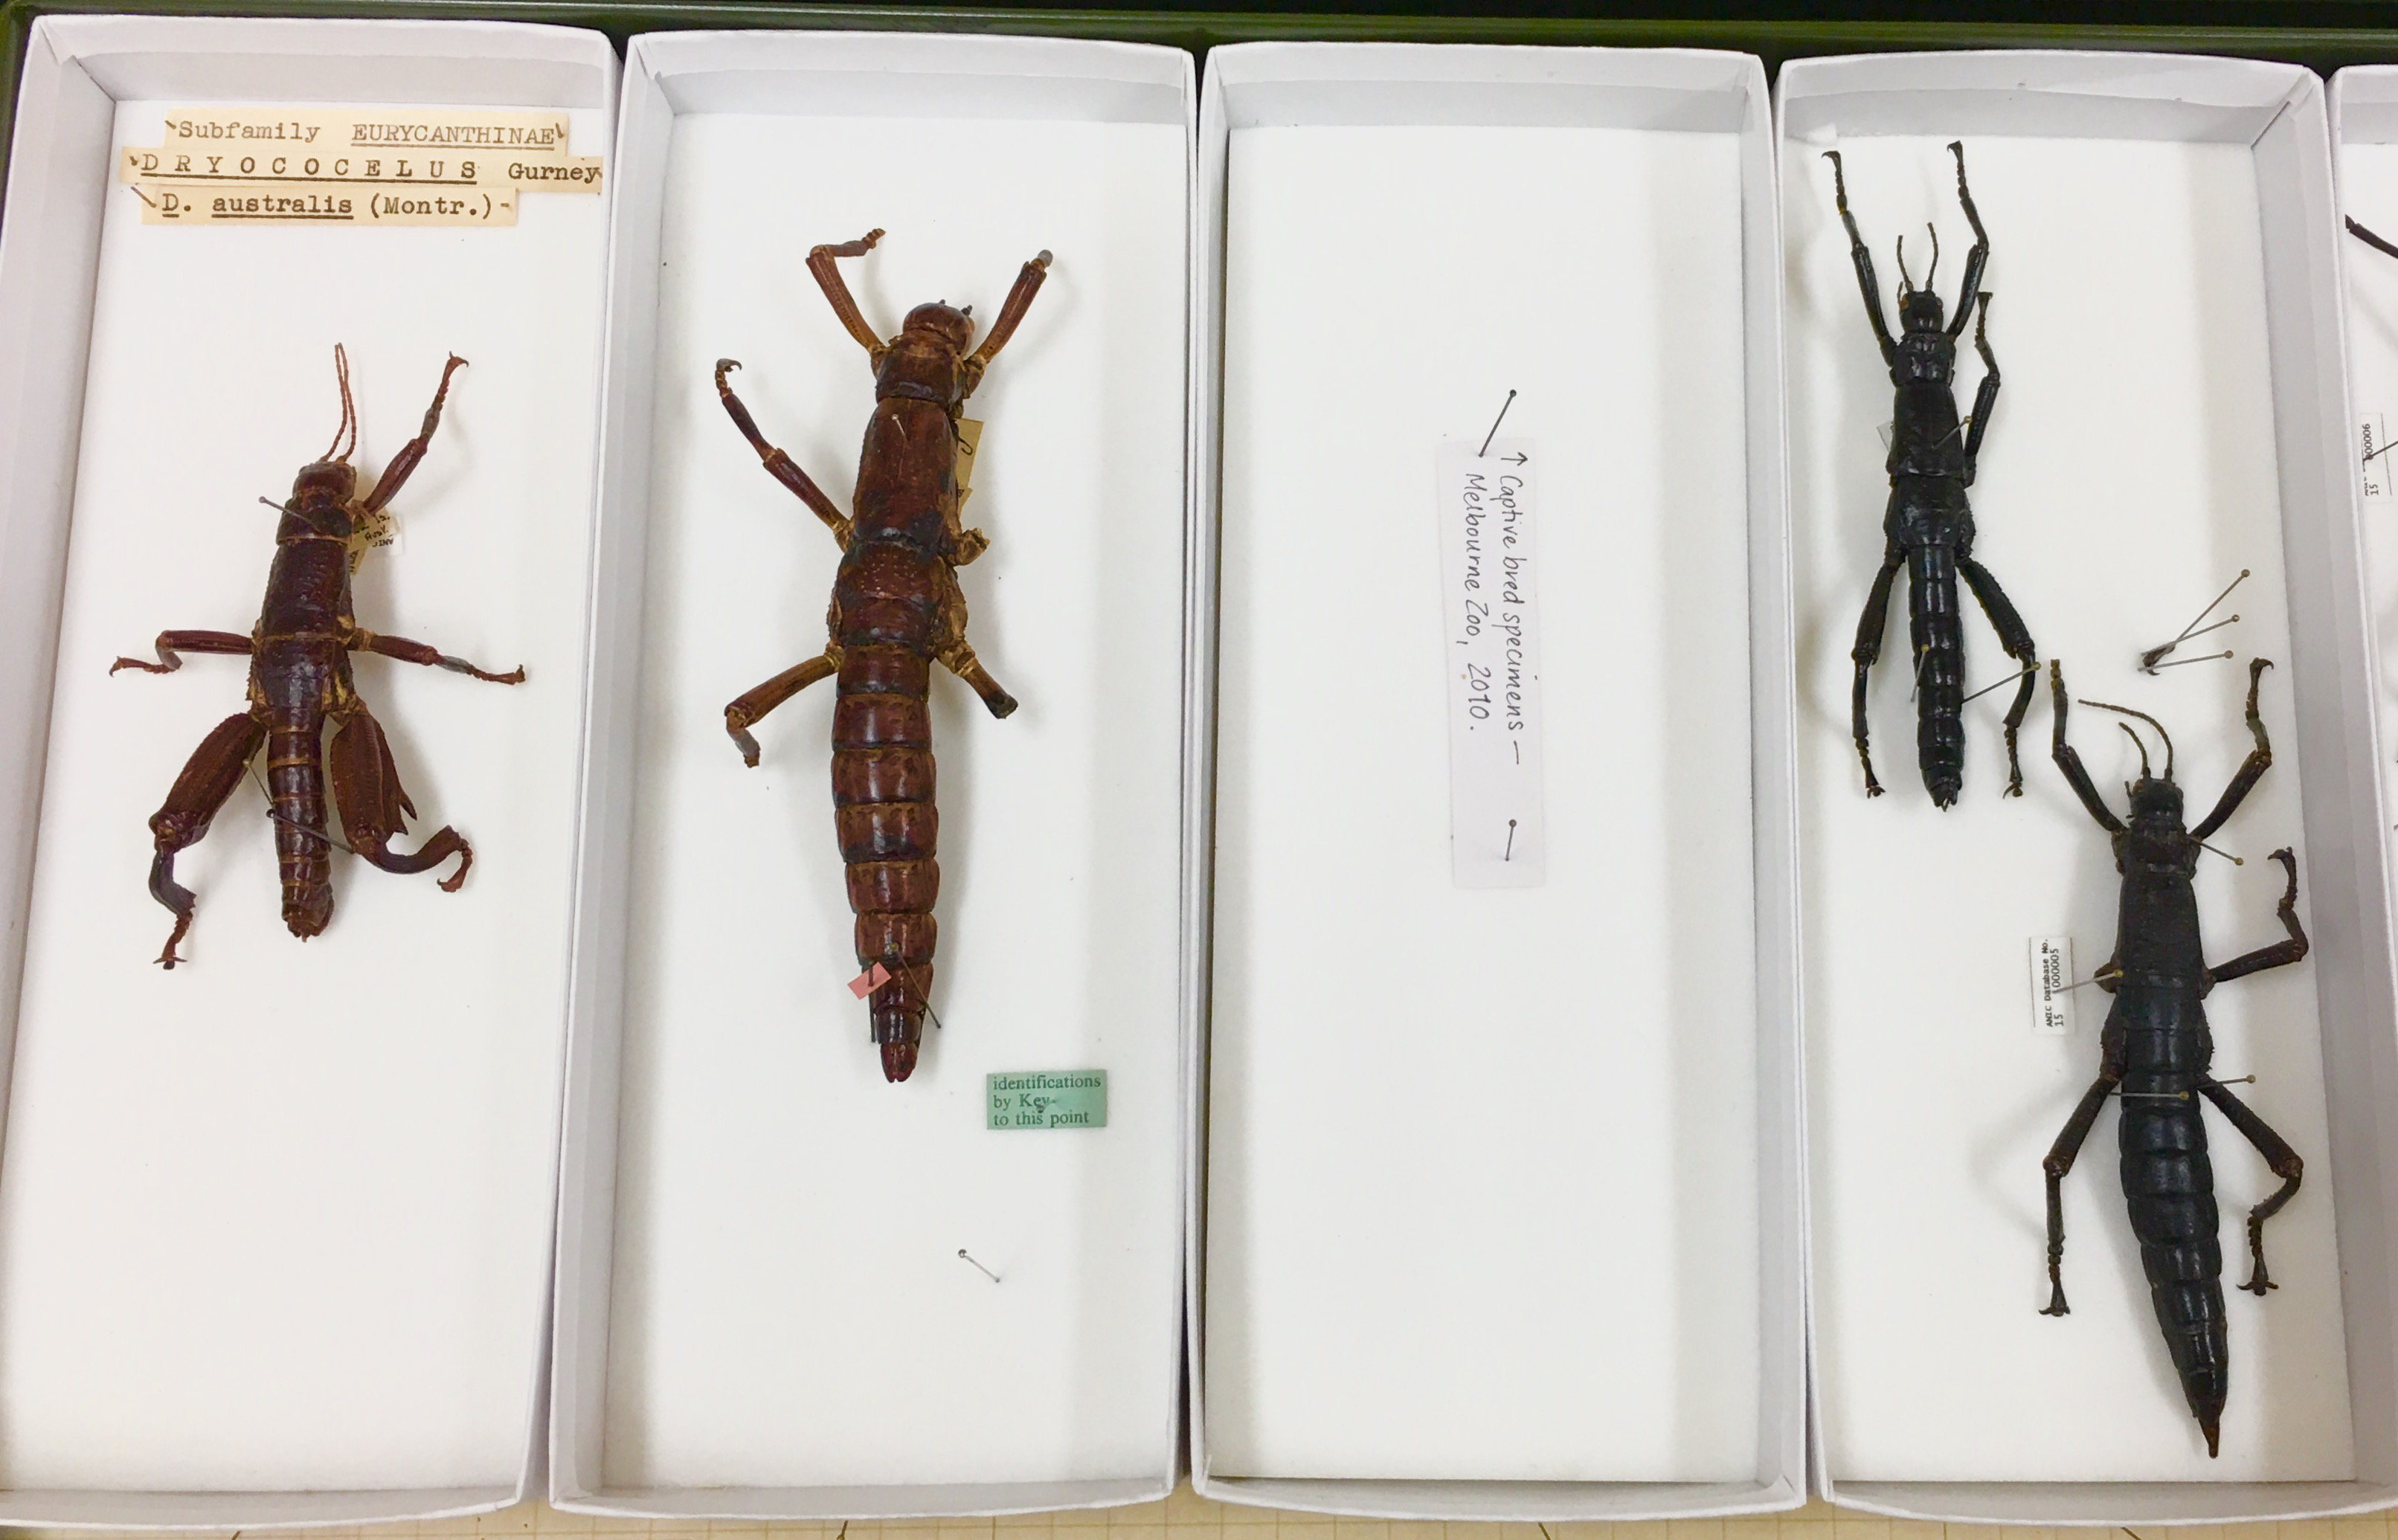 Dorsal view of pinned Lord Howe Island stick insect specimens showing differences in colour and shape.